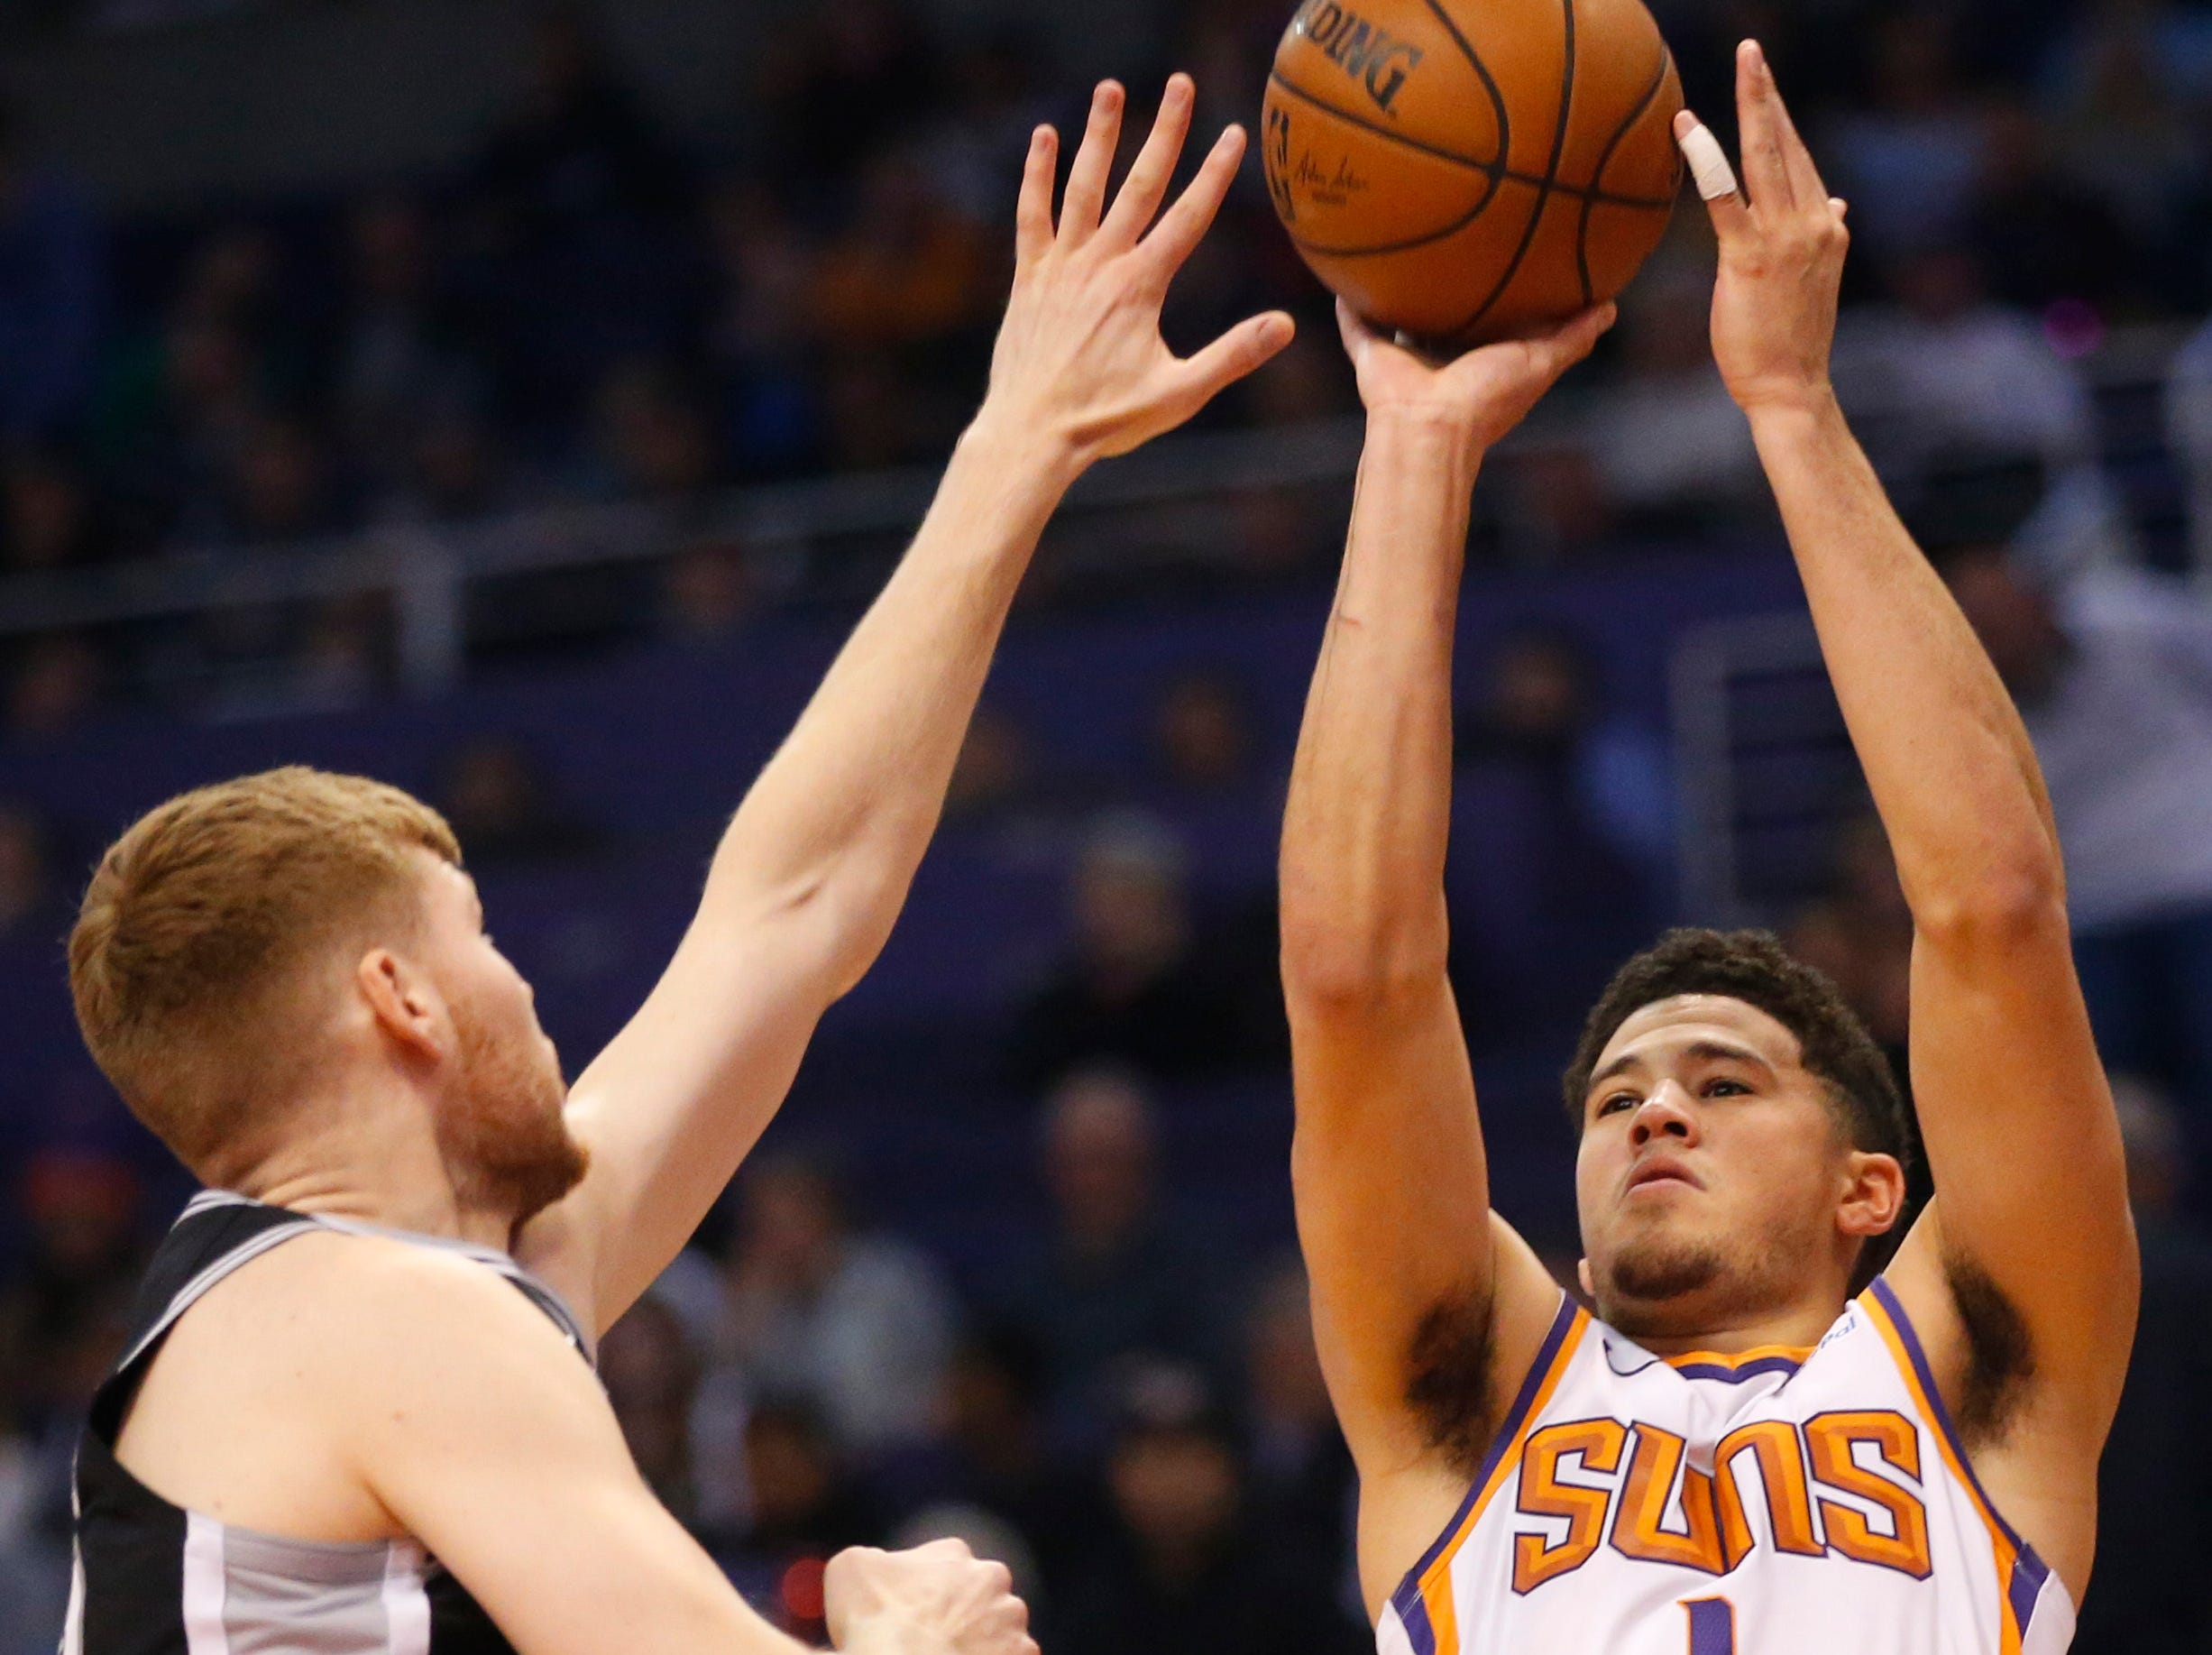 Phoenix Suns guard Devin Booker (1) takes a shot while being guarded by San Antonio Spurs forward Davis Bertans (42) during a NBA game at Talking Stick Arena in Phoenix on November 14.